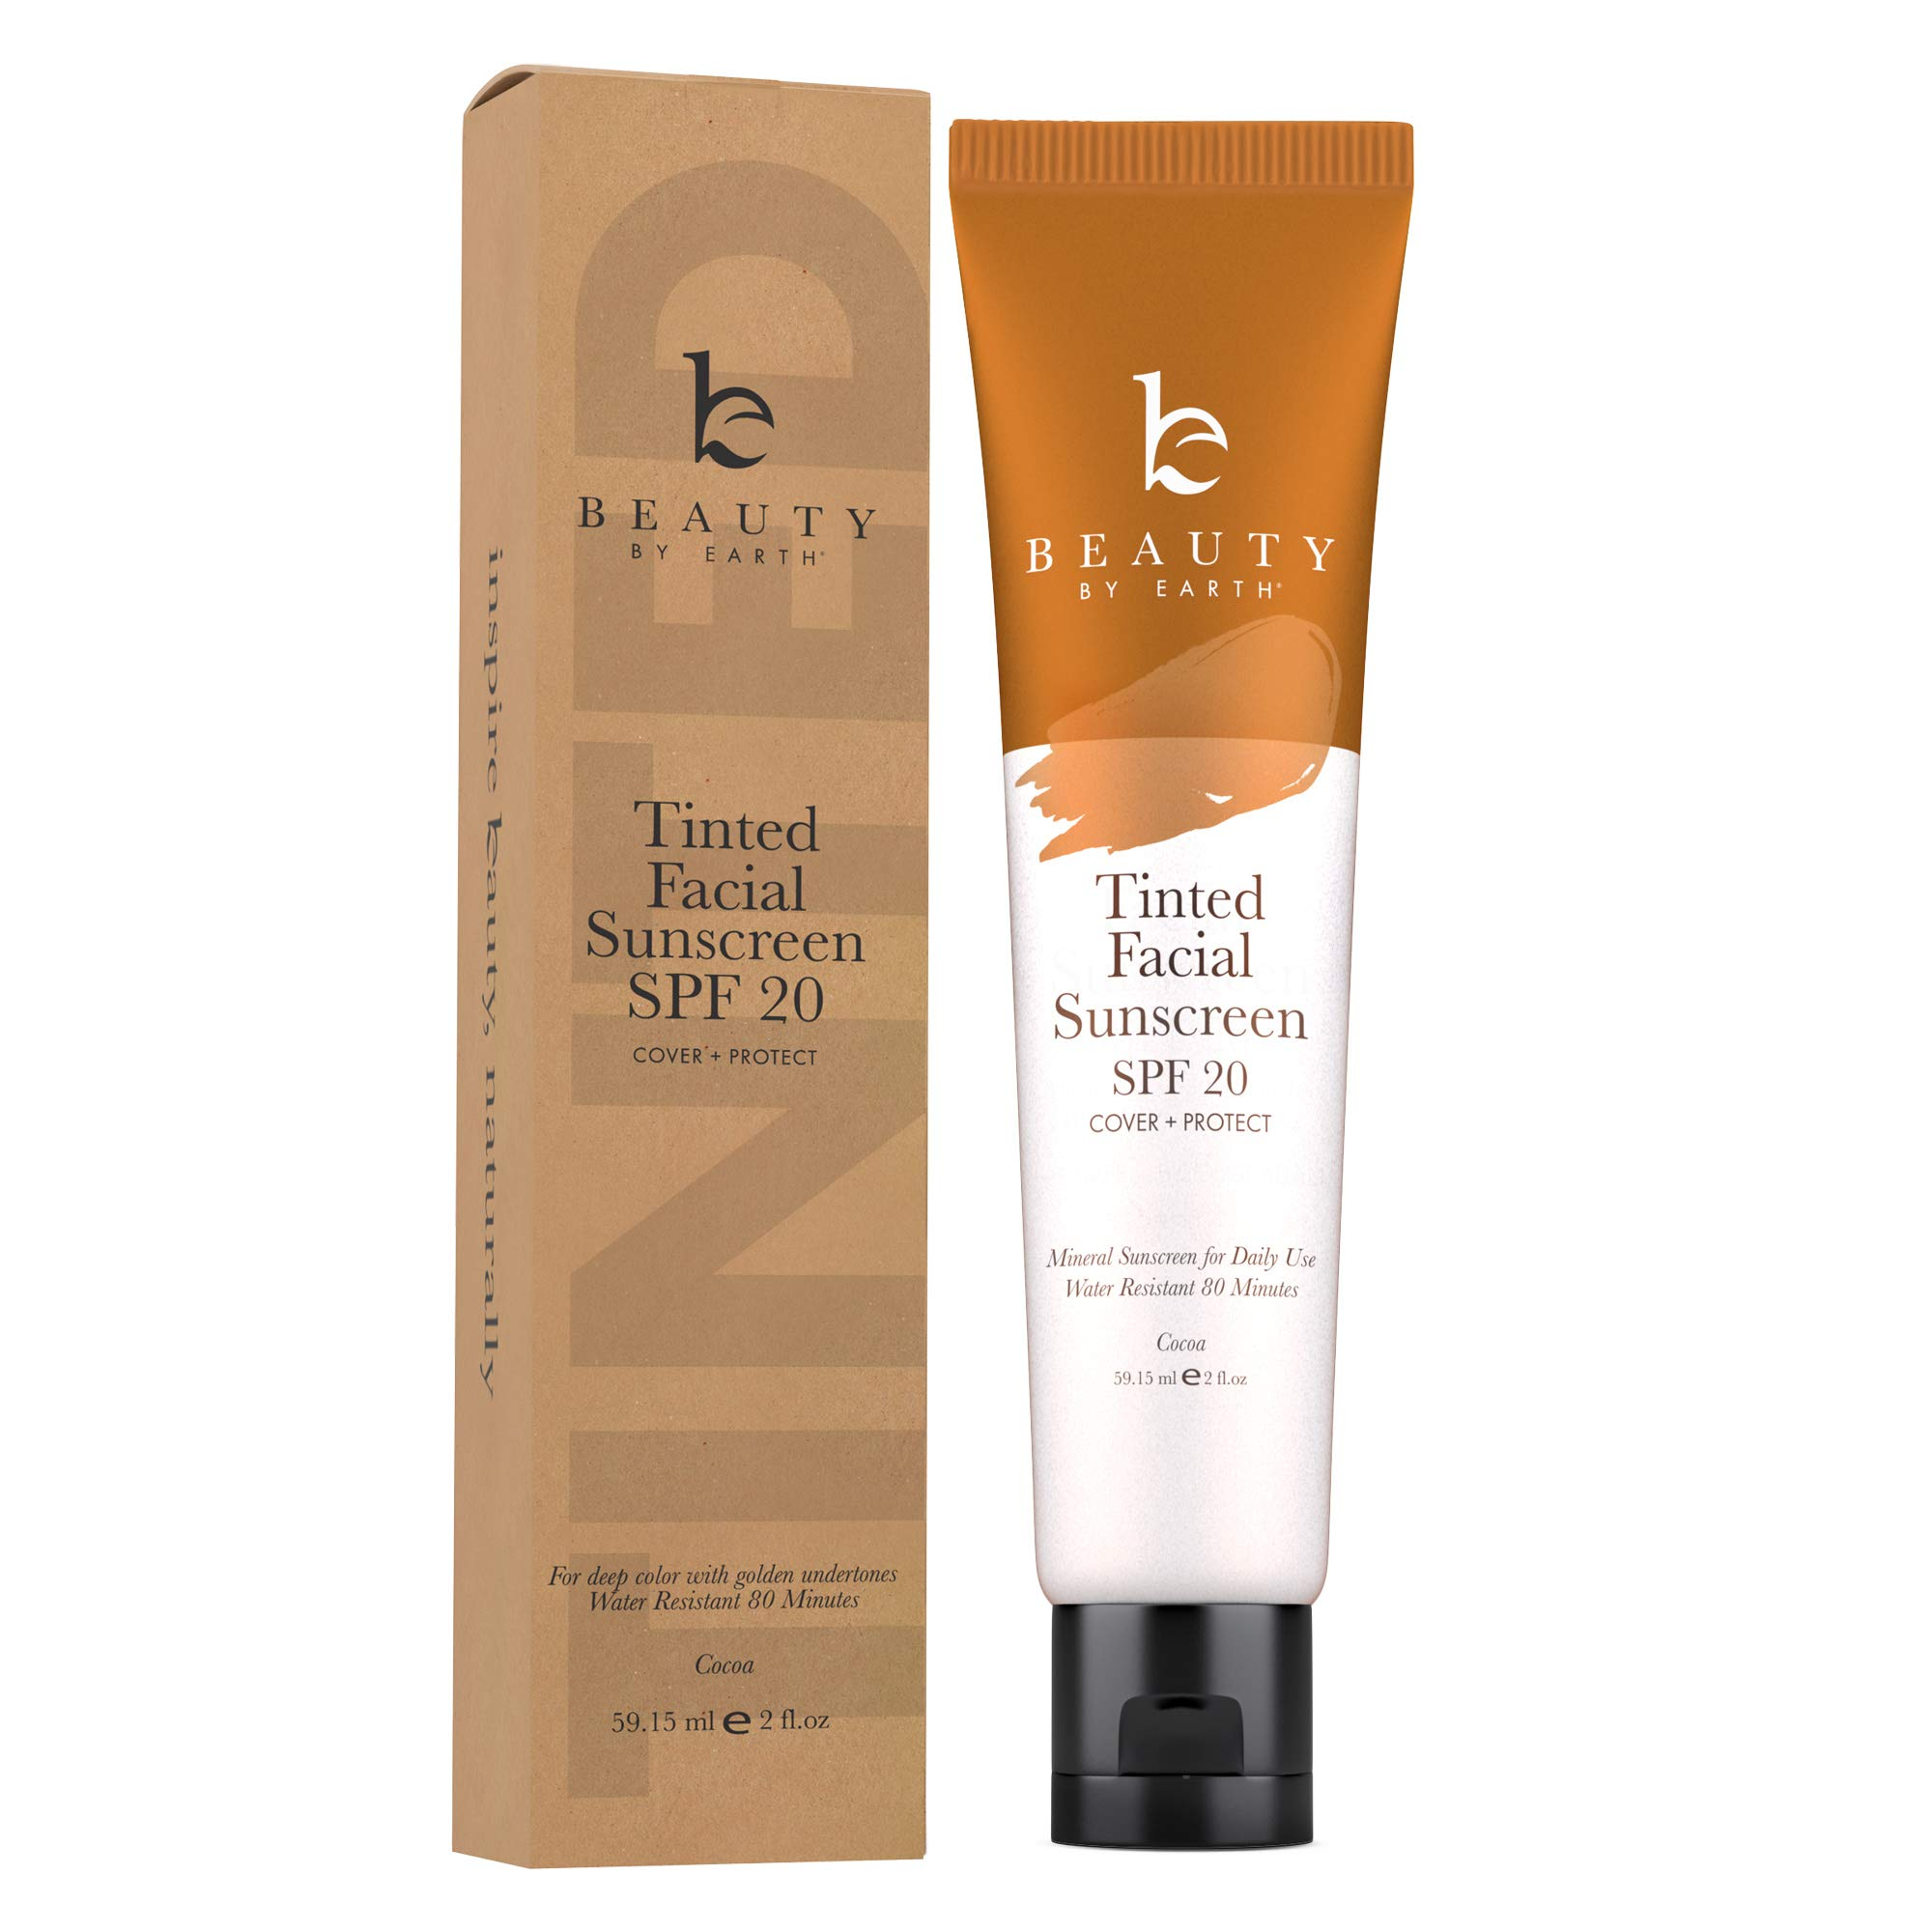 Tinted Sunscreen for Face - SPF 20 With Natural & Organic Ingredients Broad Spectrum Sunblock Lotion, Tinted Moisturizer Zinc Oxide Sunscreen Face for Skincare, Facial Sunscreen (Cocoa)